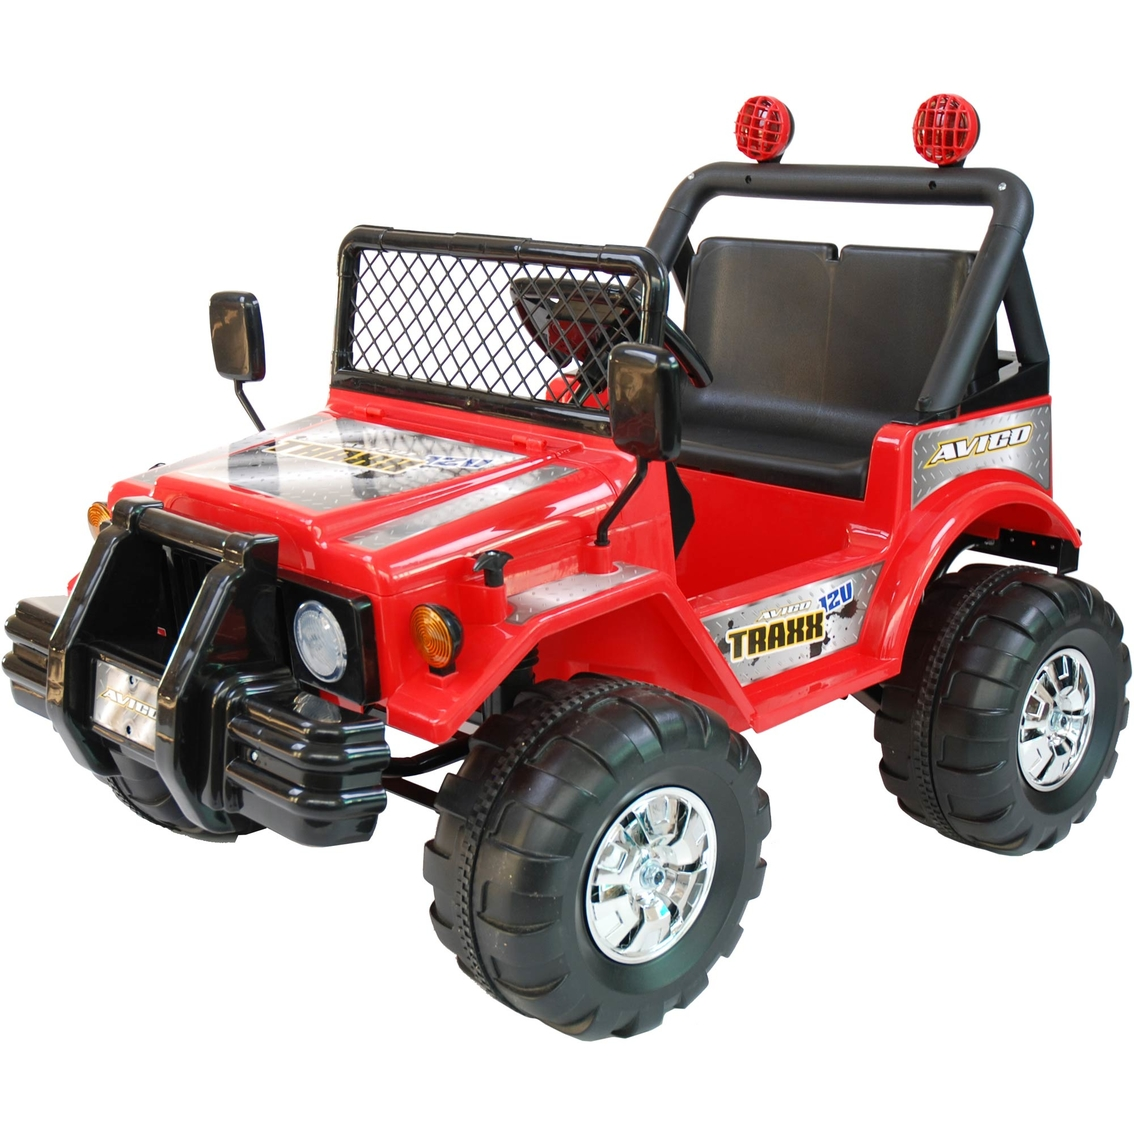 Battery Powered Riding Toys For Boys : Kidtrax avigo traxx volt electric ride on red